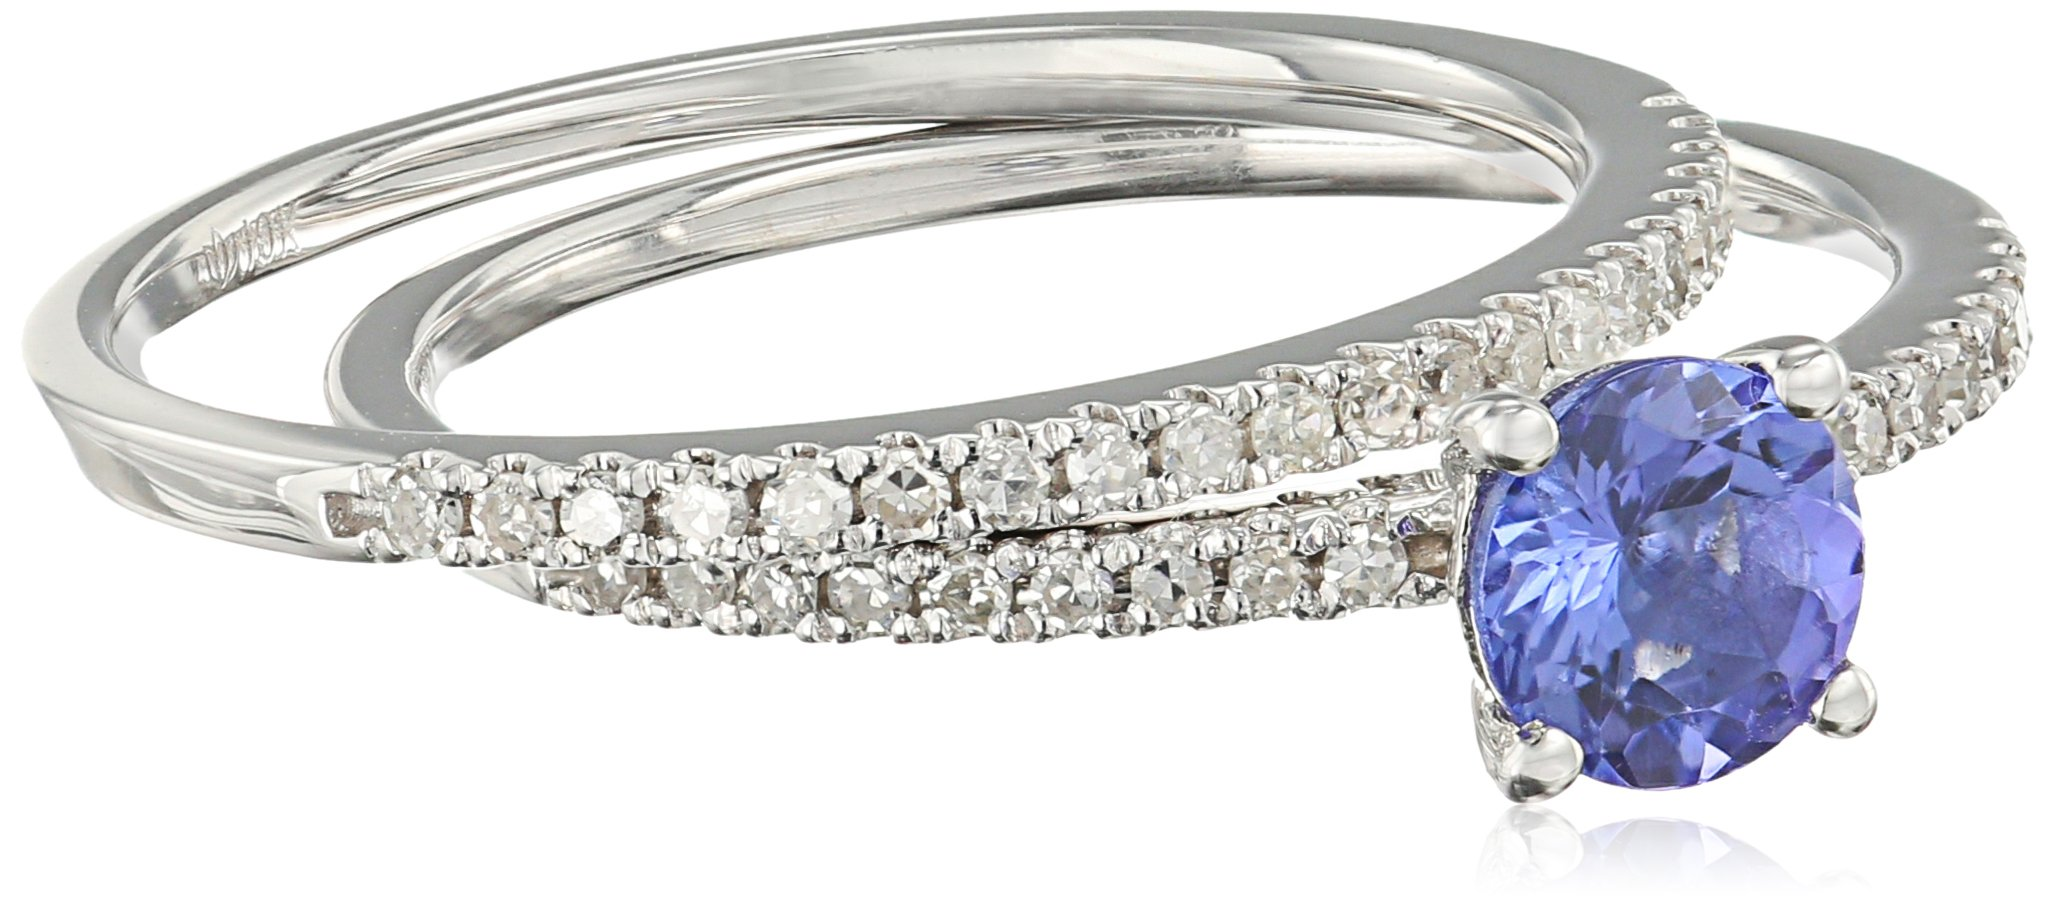 10k White Gold AAA Tanzanite And Diamond Stackable Ring (1/5cttw, H-I Color, I1-I2 Clarity), Size 7